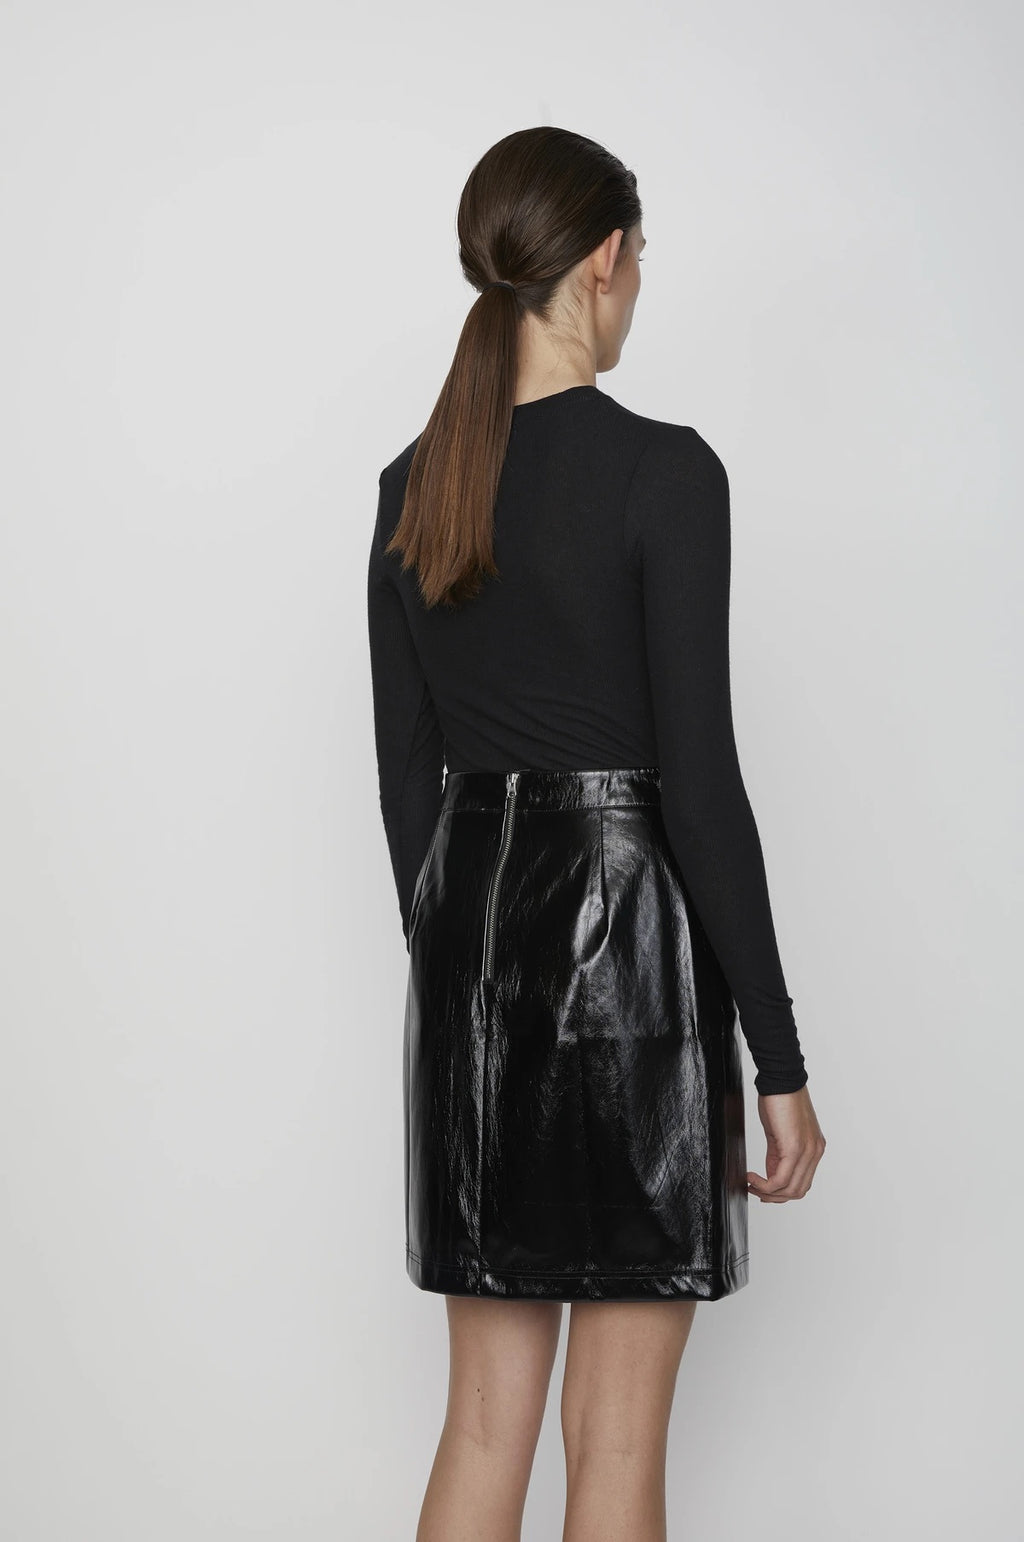 JUST Dianna Skirt - Black